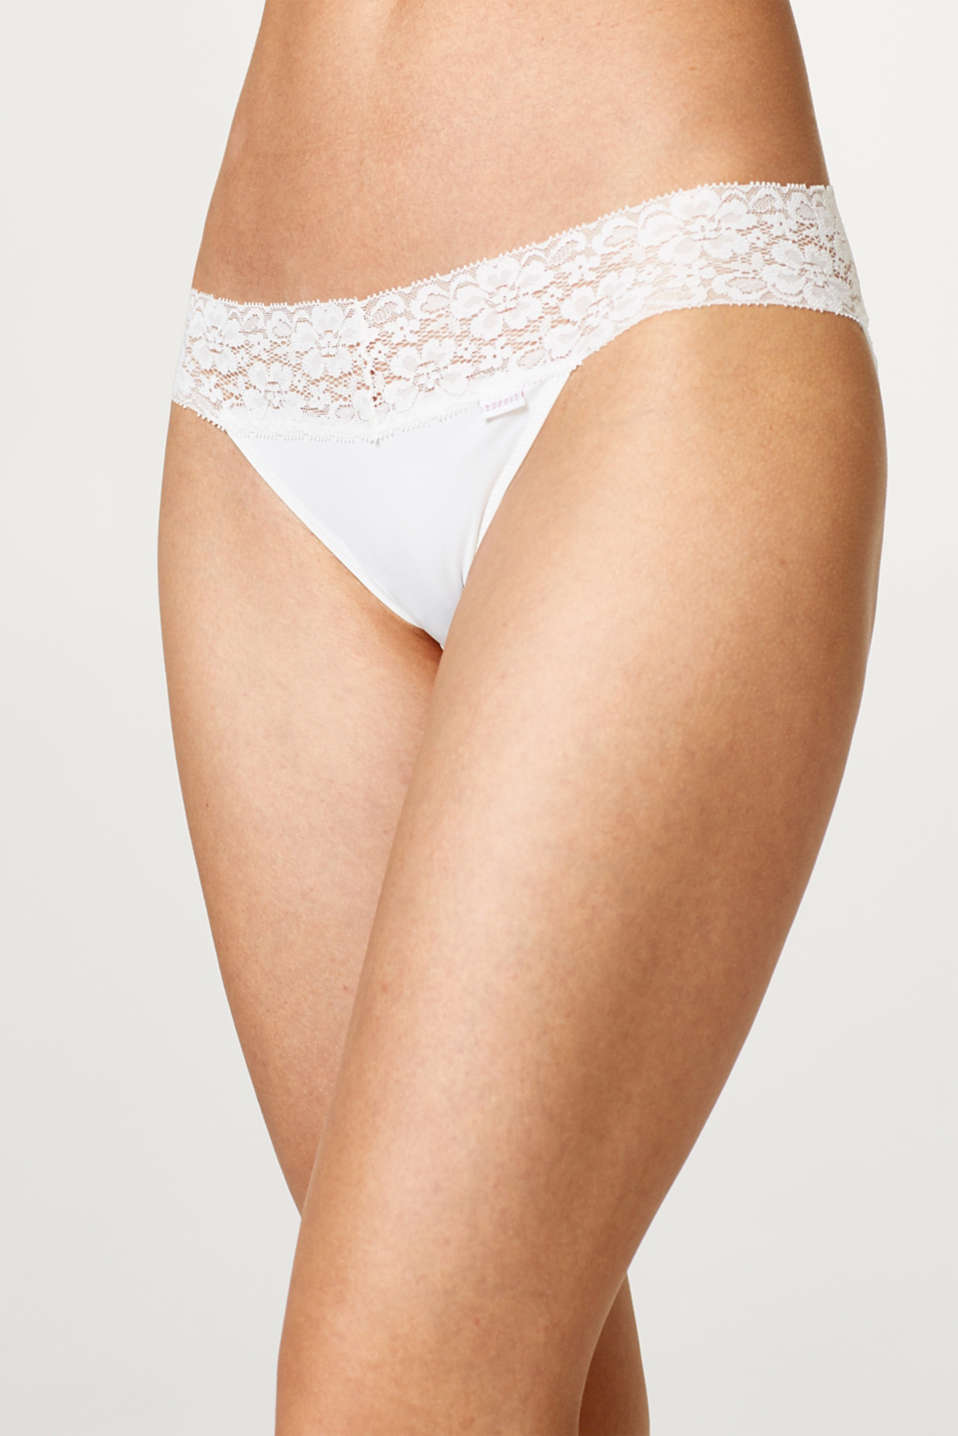 Hipster briefs with a lace waistband